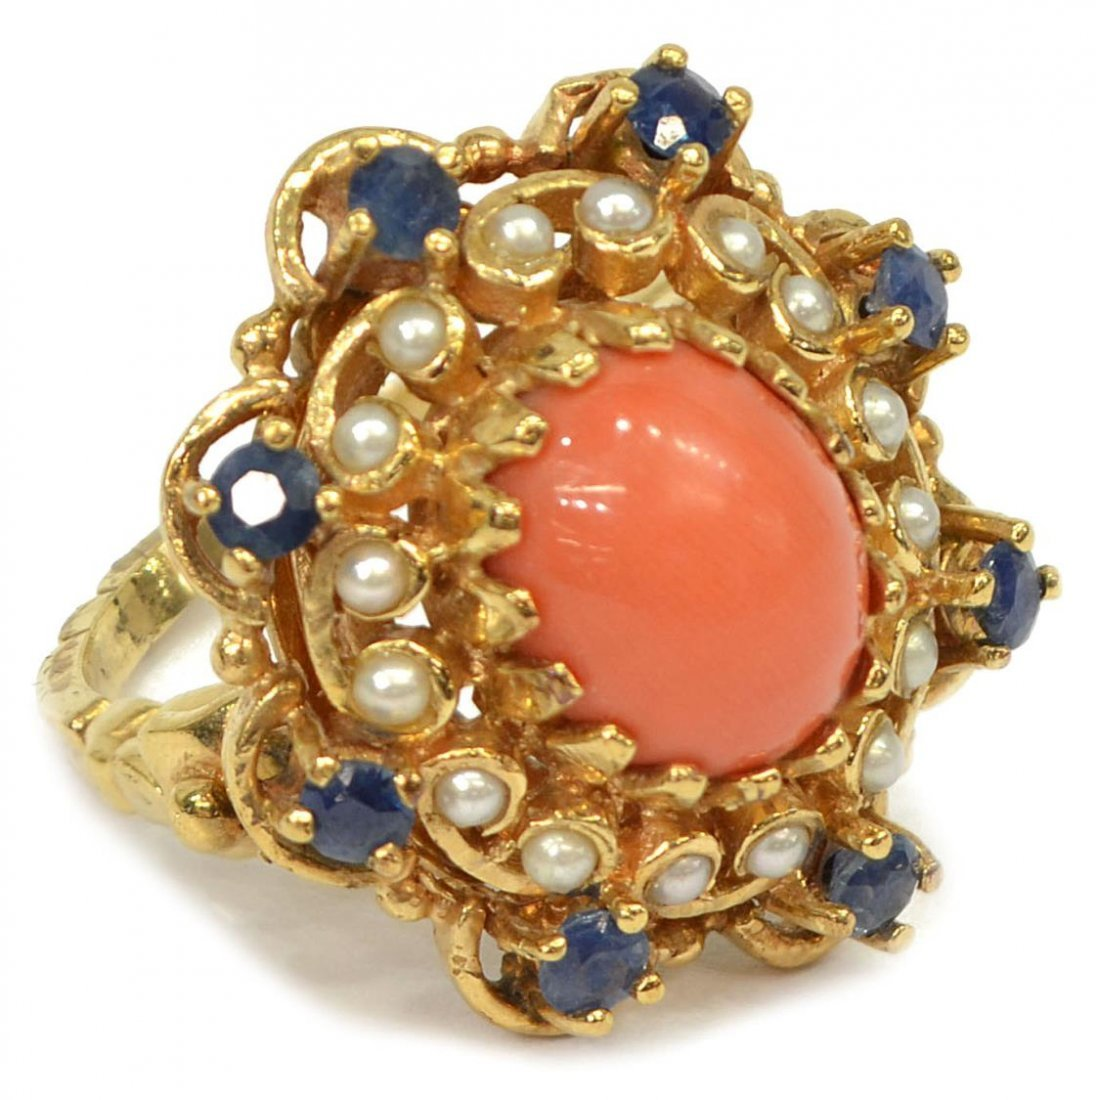 LADIES 14KT GOLD CORAL, PEARL AND SAPPHIRE RING